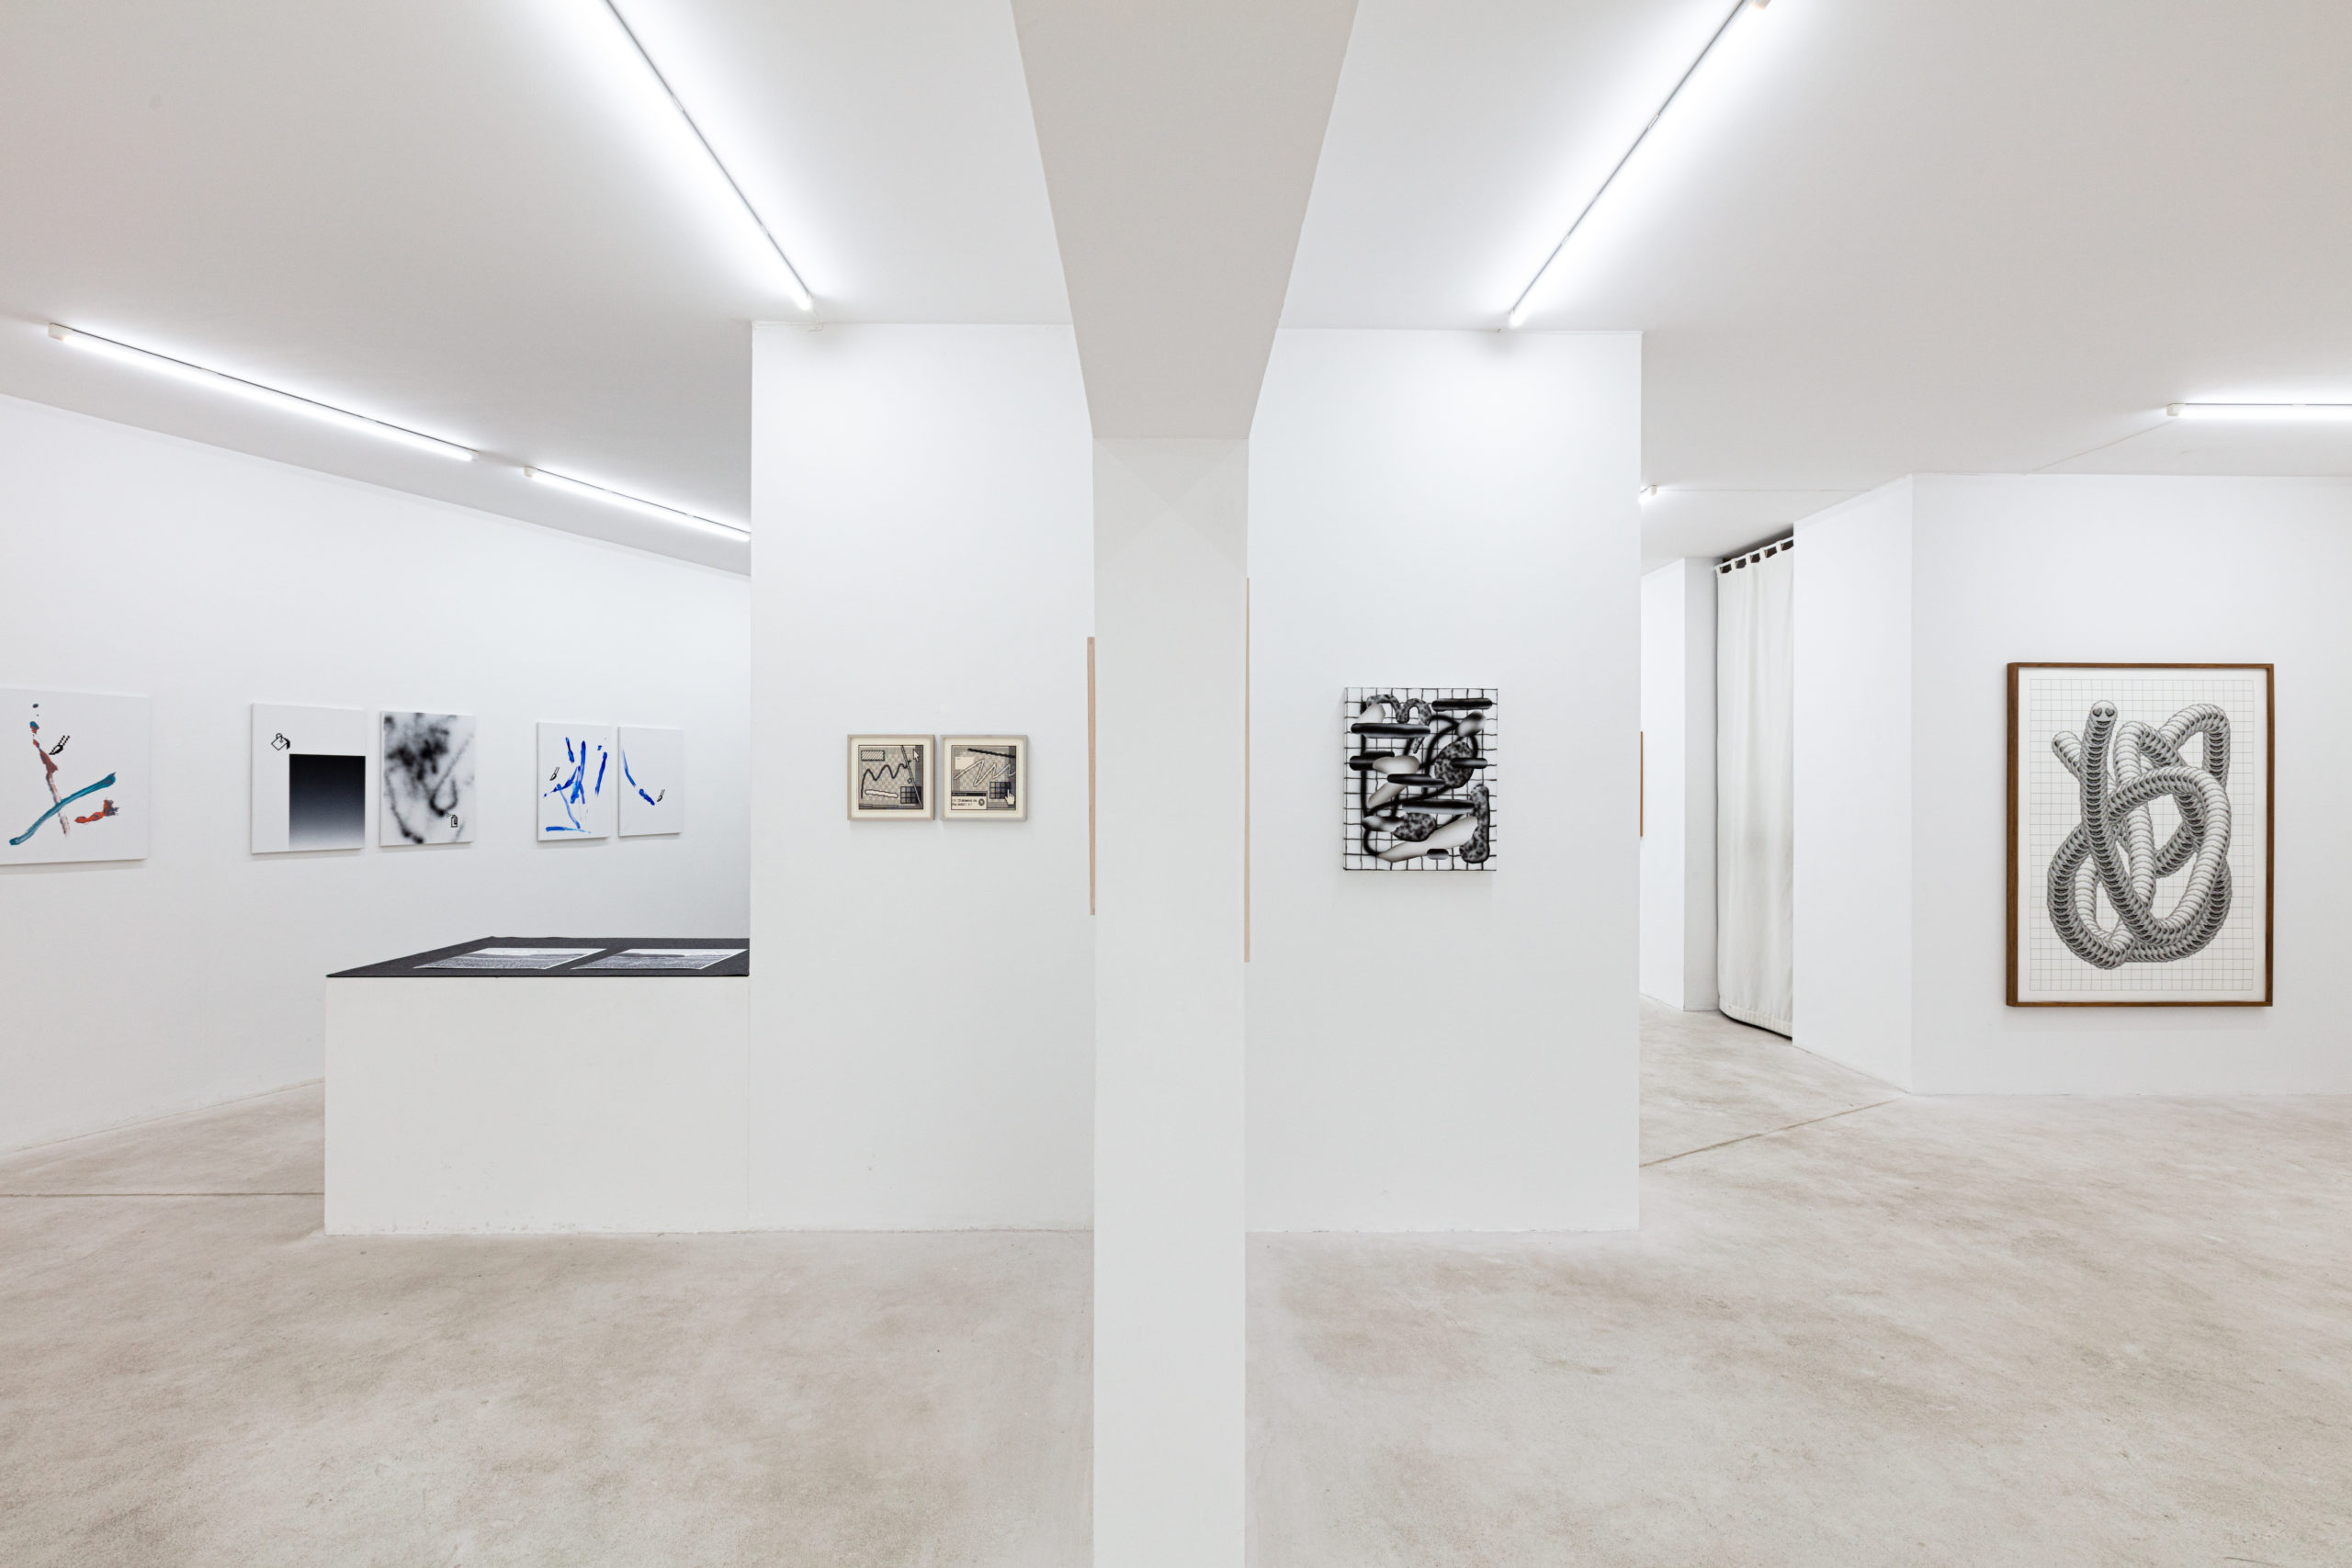 Arno Beck, dig-it-all, 2020, installation view